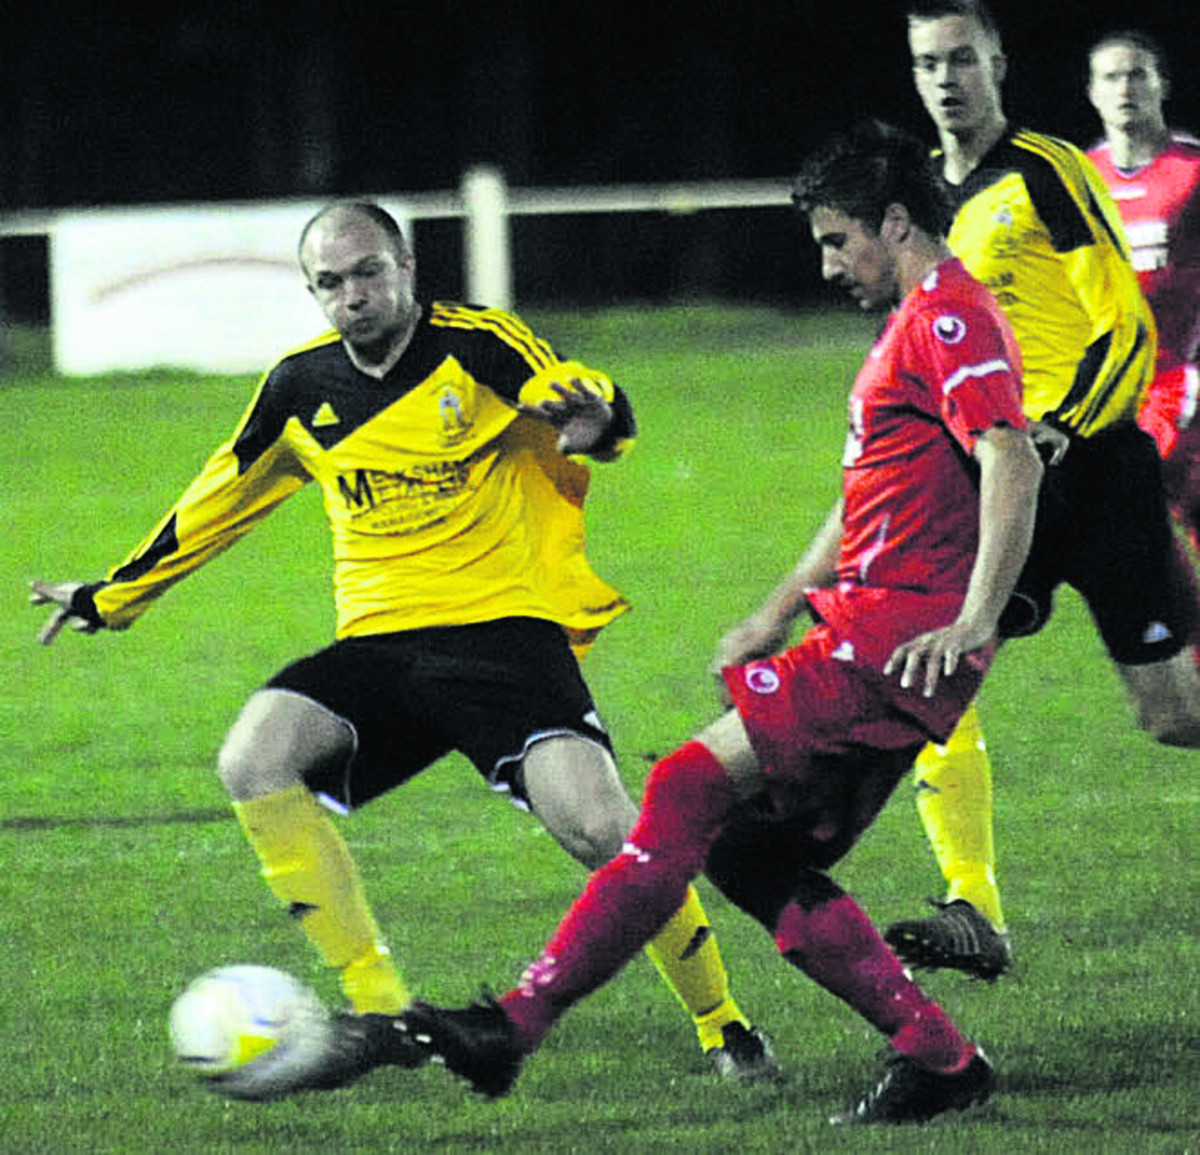 Melksham Town's Shaun Benison (yellow) challenges Jamie Richards, of Purton, in Tuesday night's Wiltshire Senior Cup semi-final